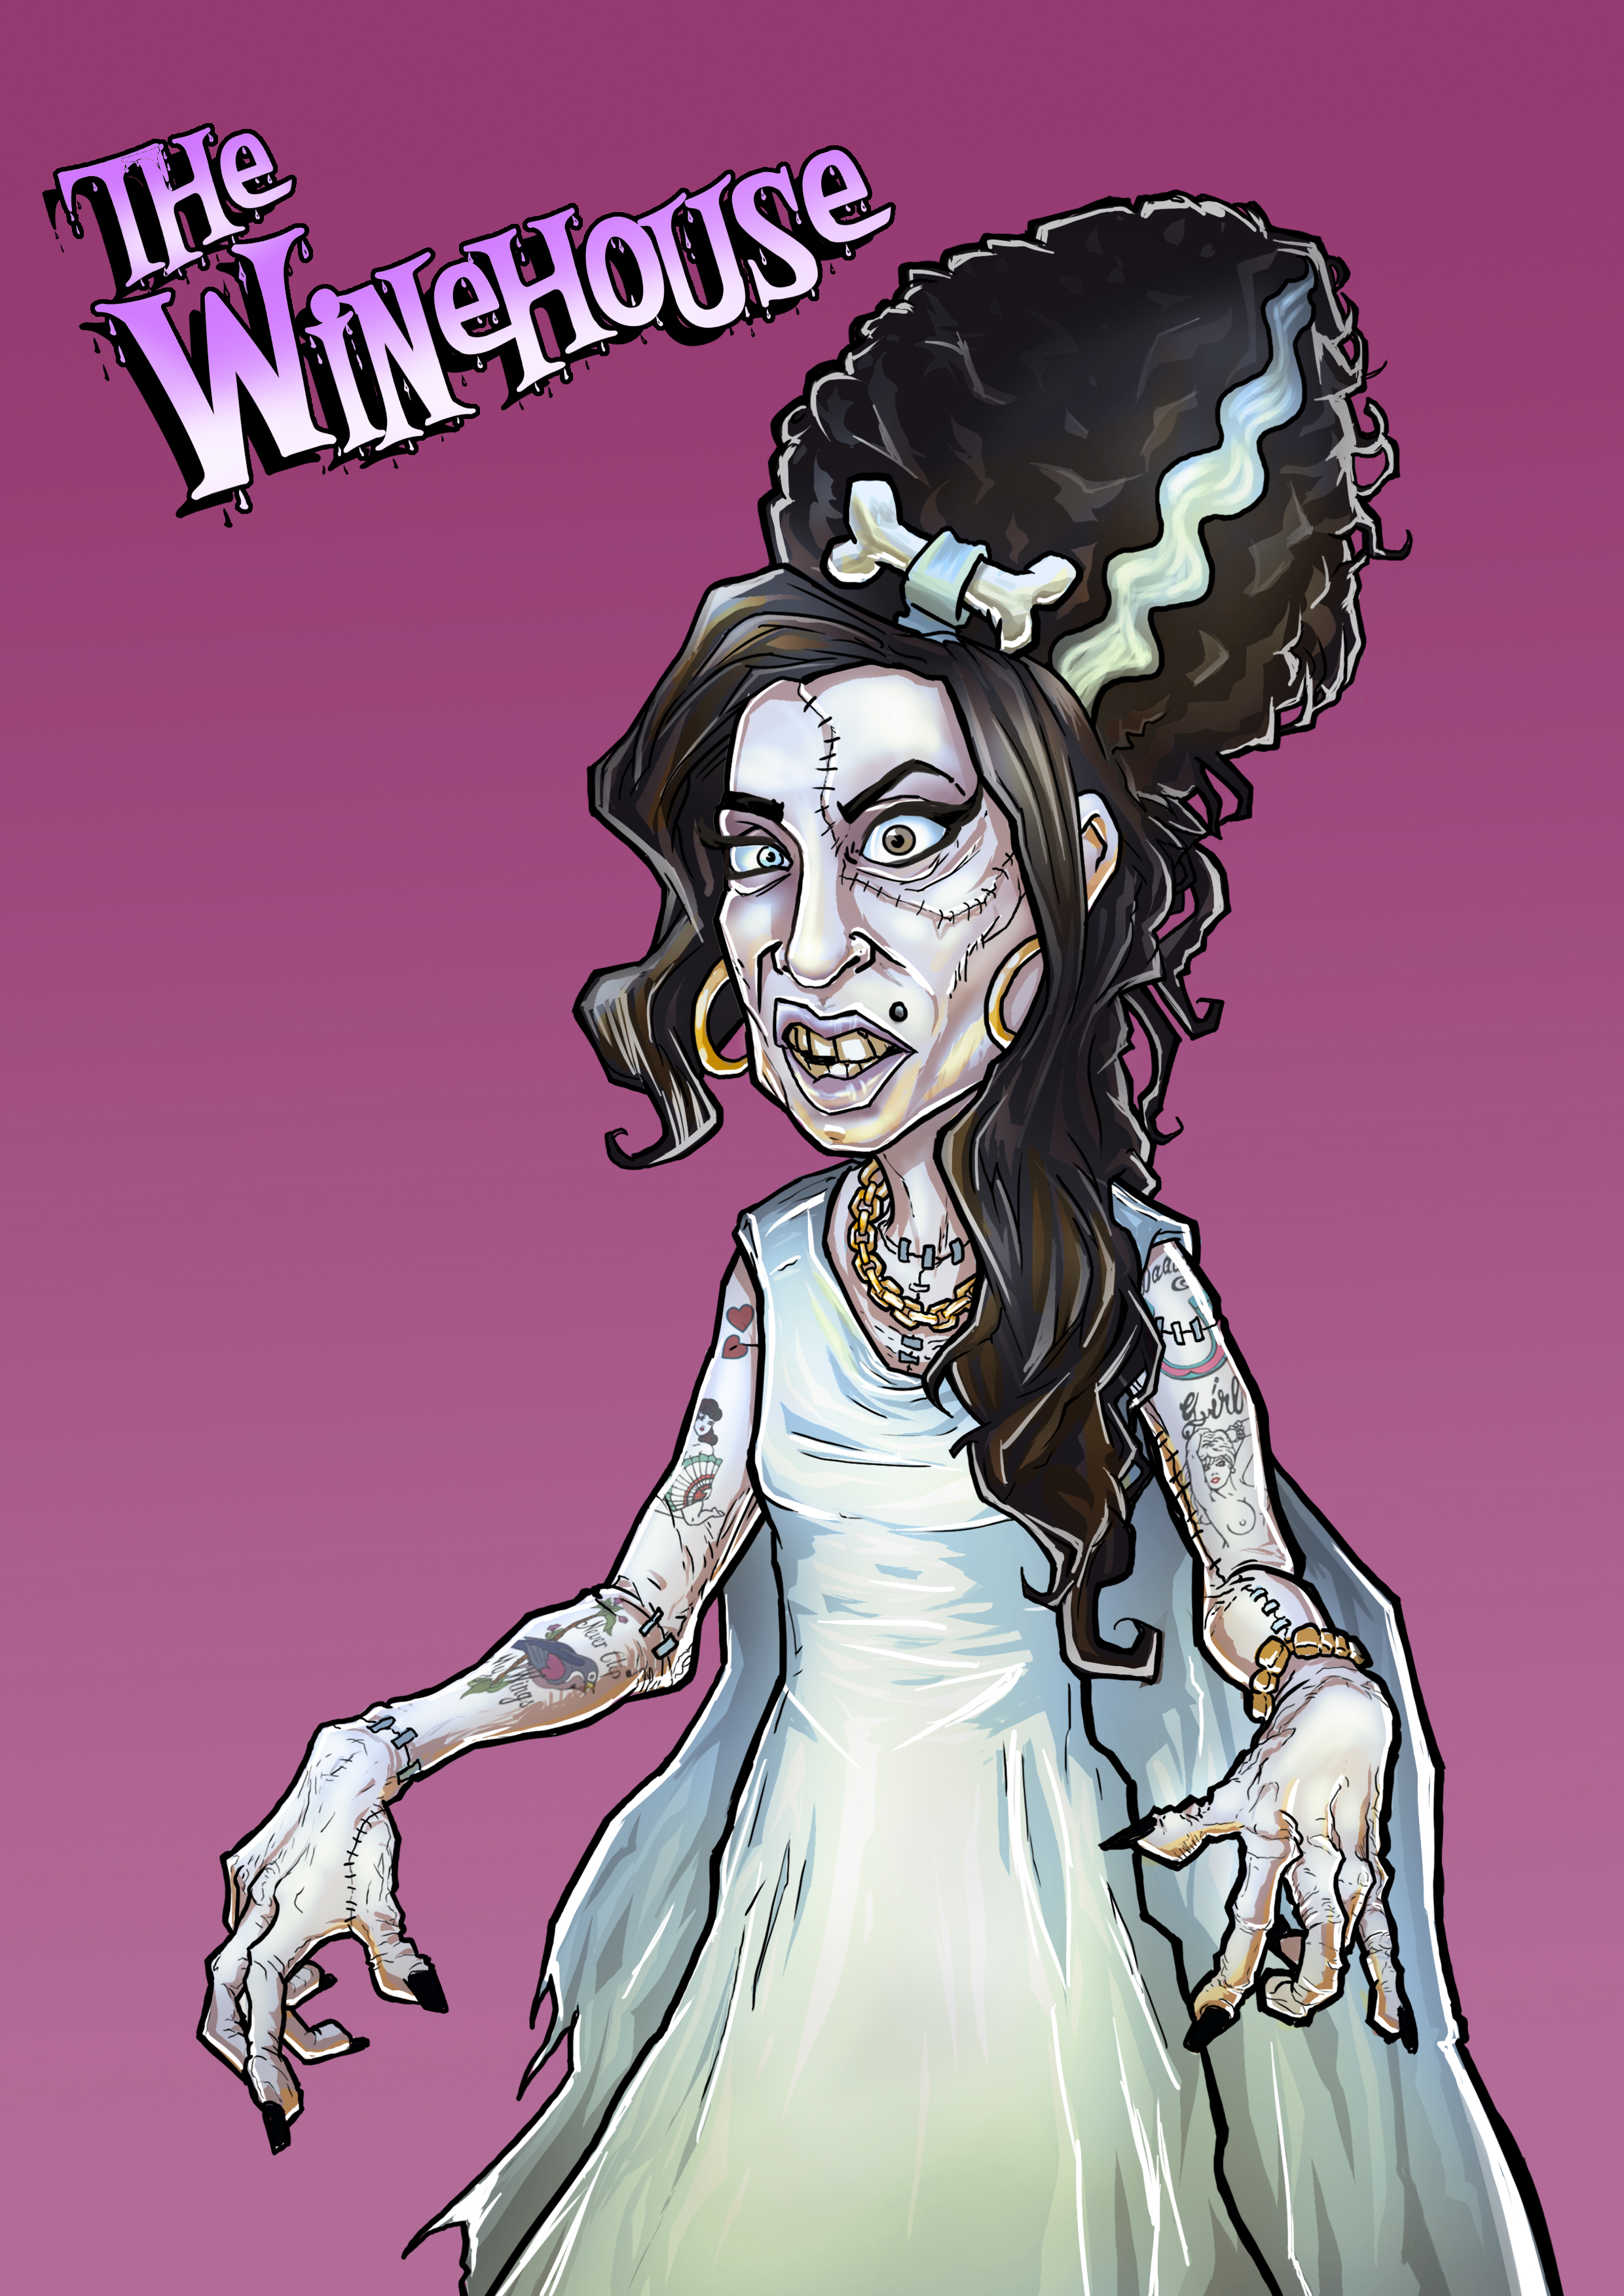 The Winehouse